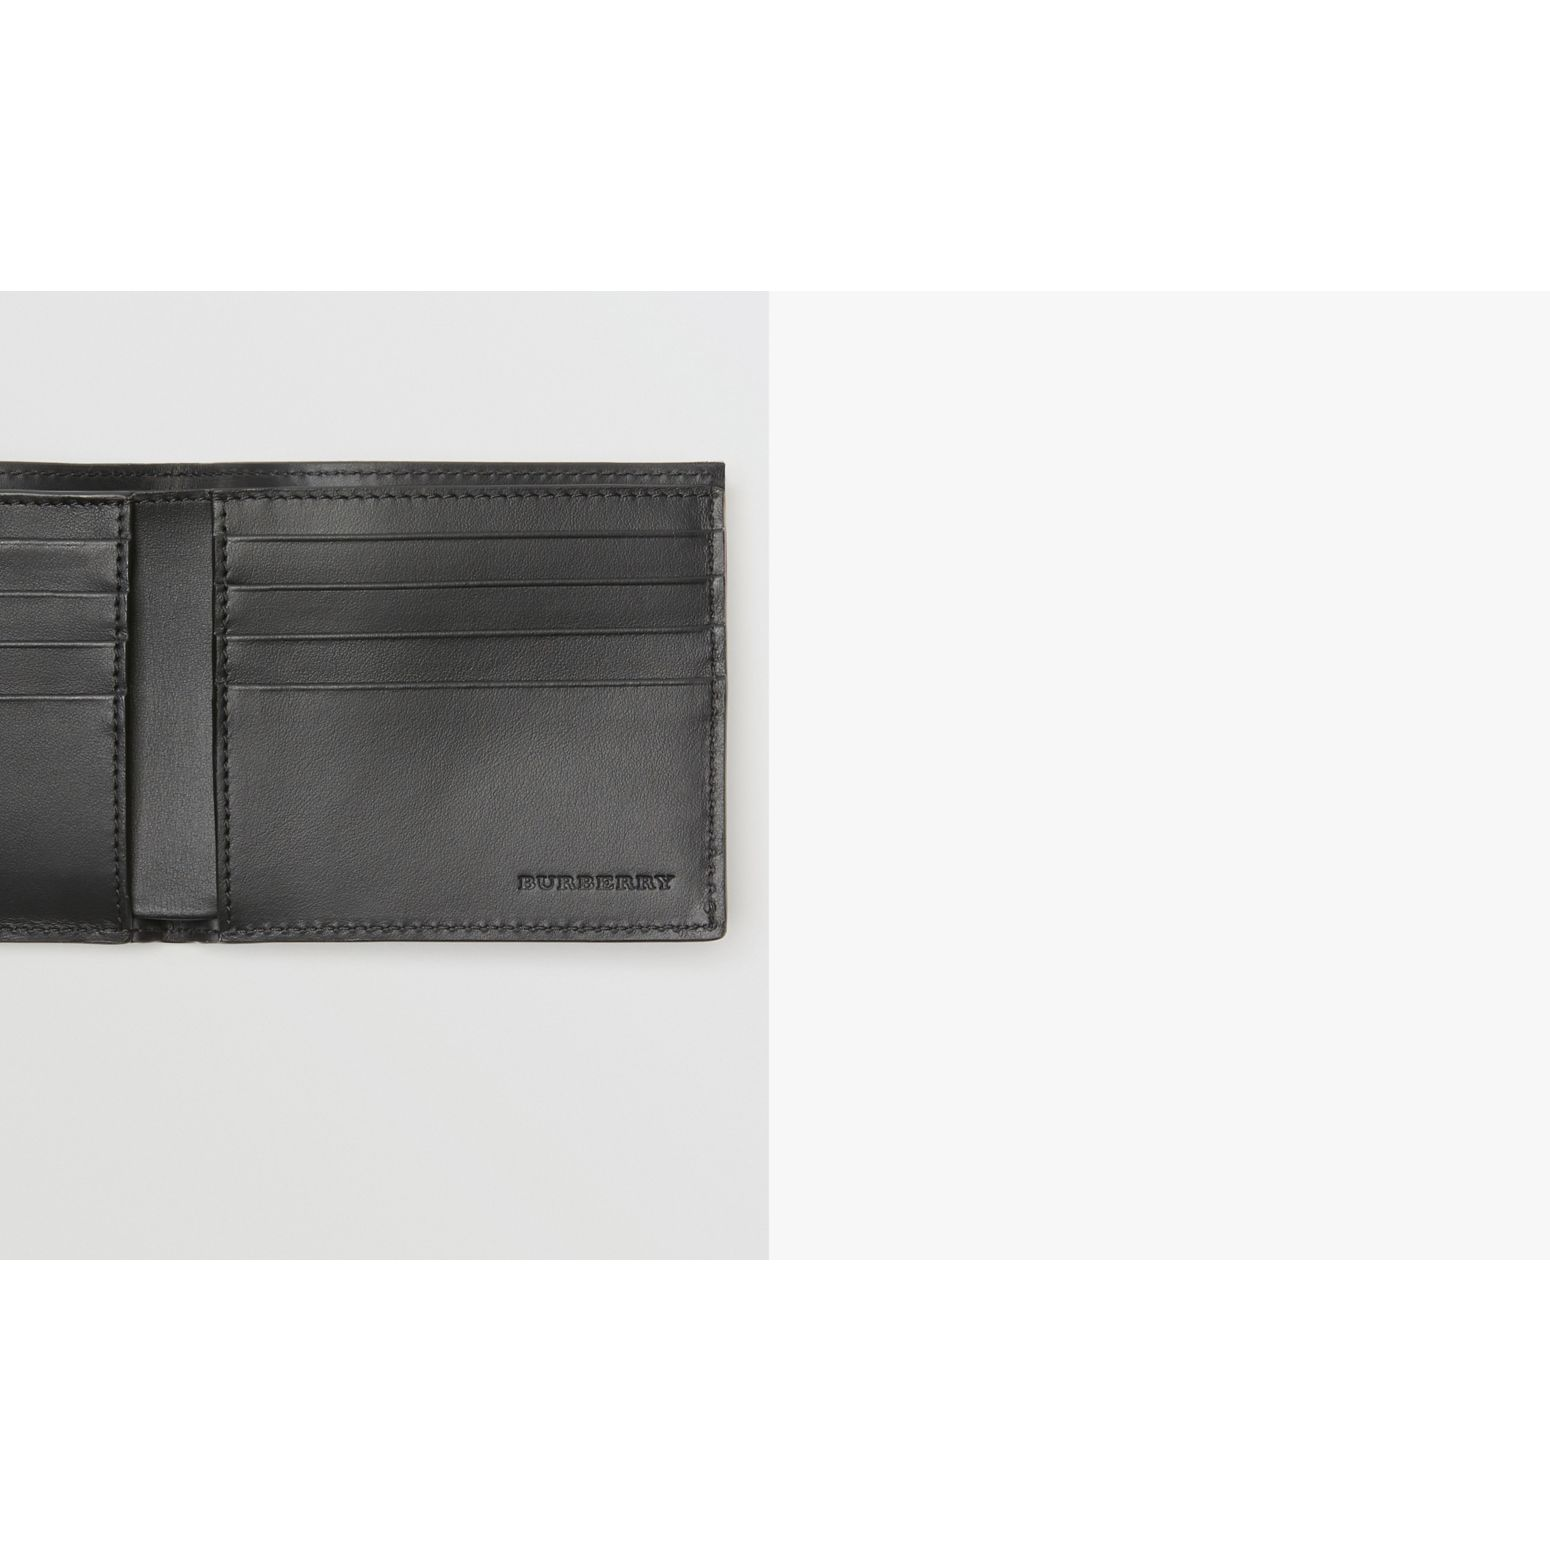 Perforated Check Leather International Bifold Wallet in Black - Men | Burberry United States - gallery image 1